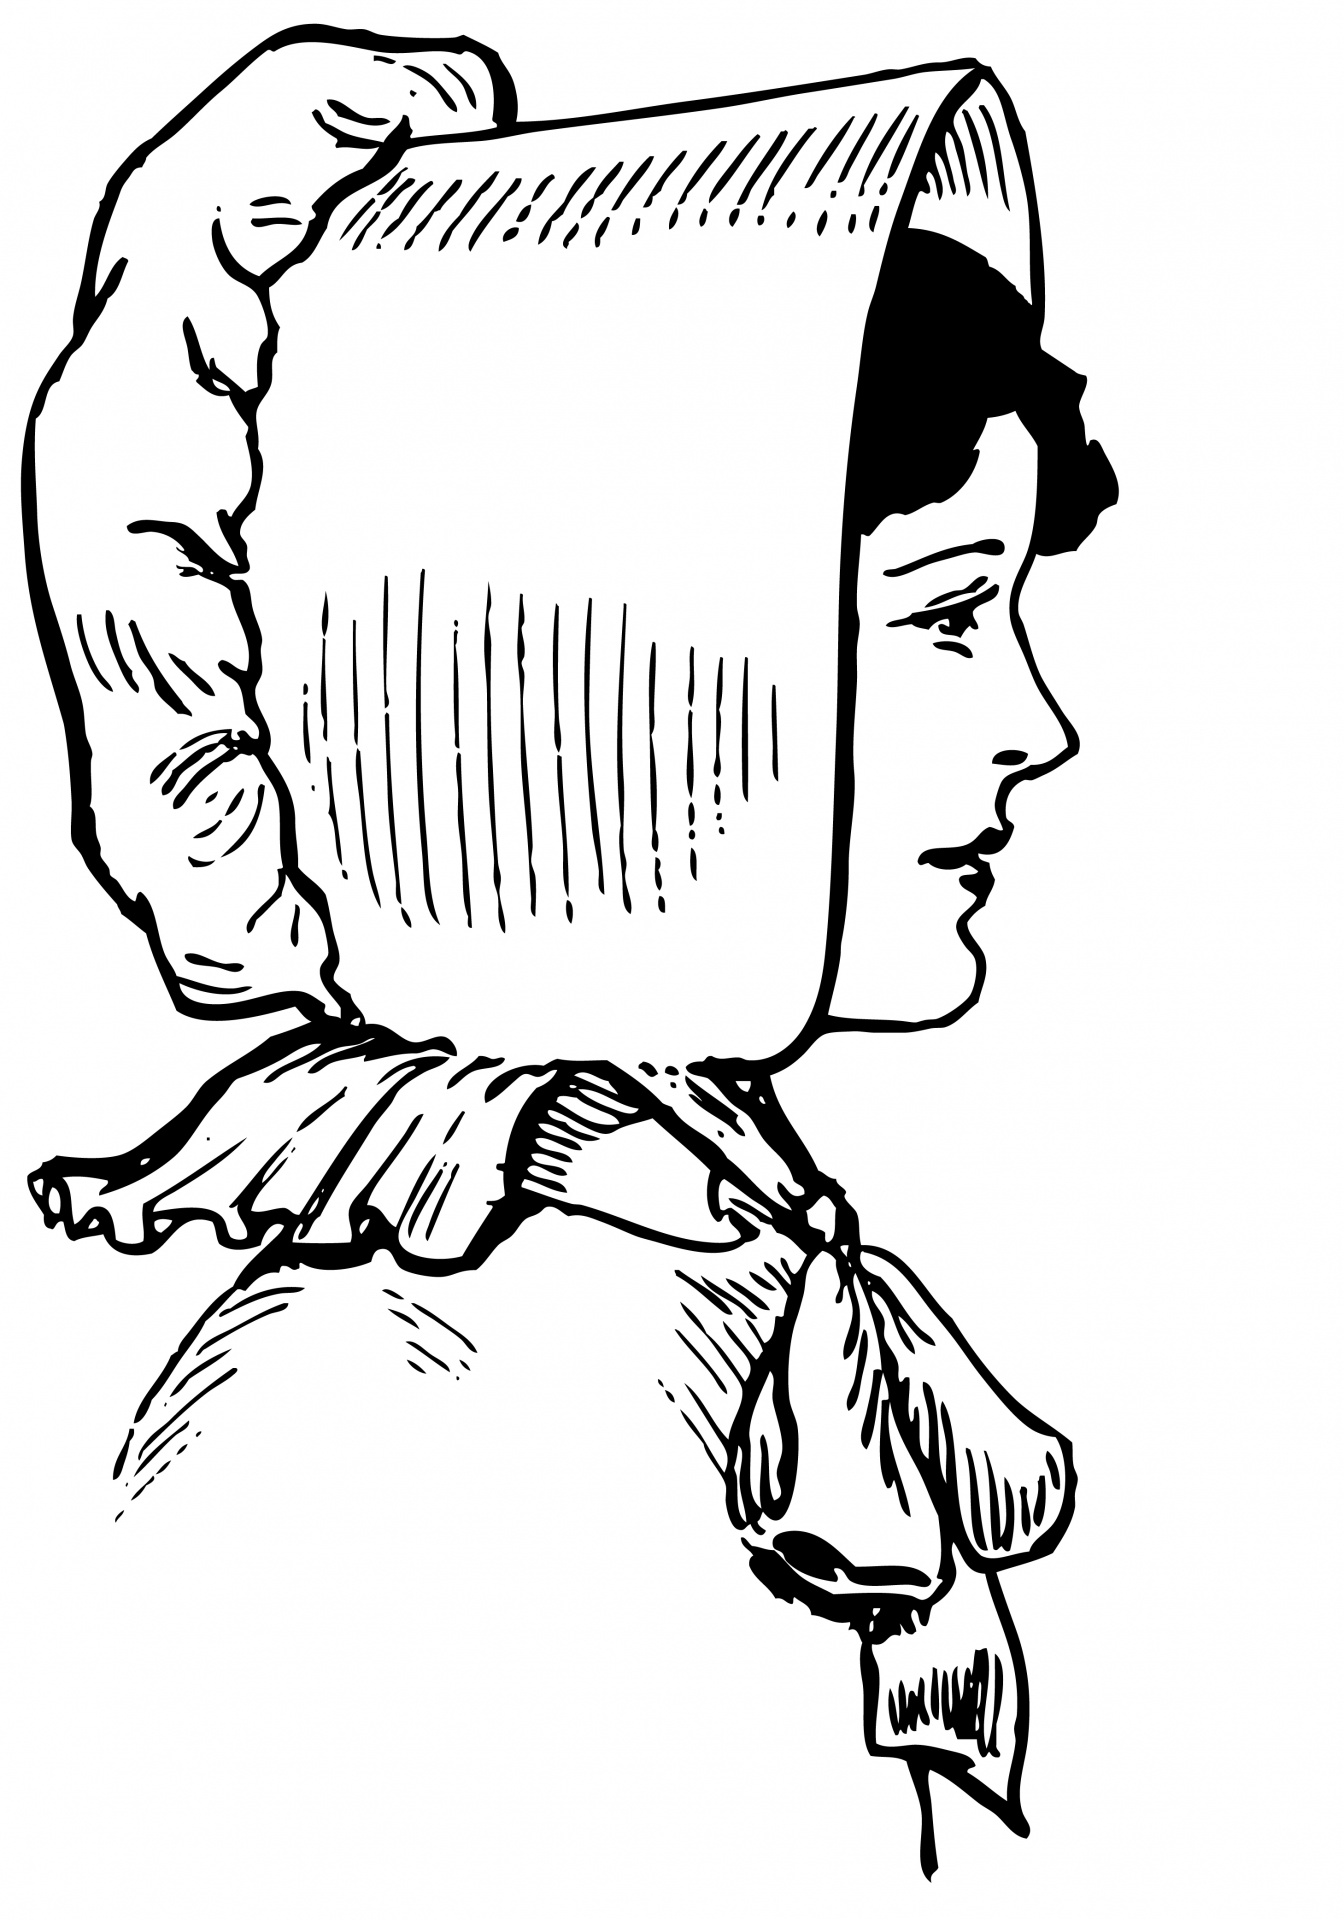 Lady In Bonnet Illustration Free Stock Photo